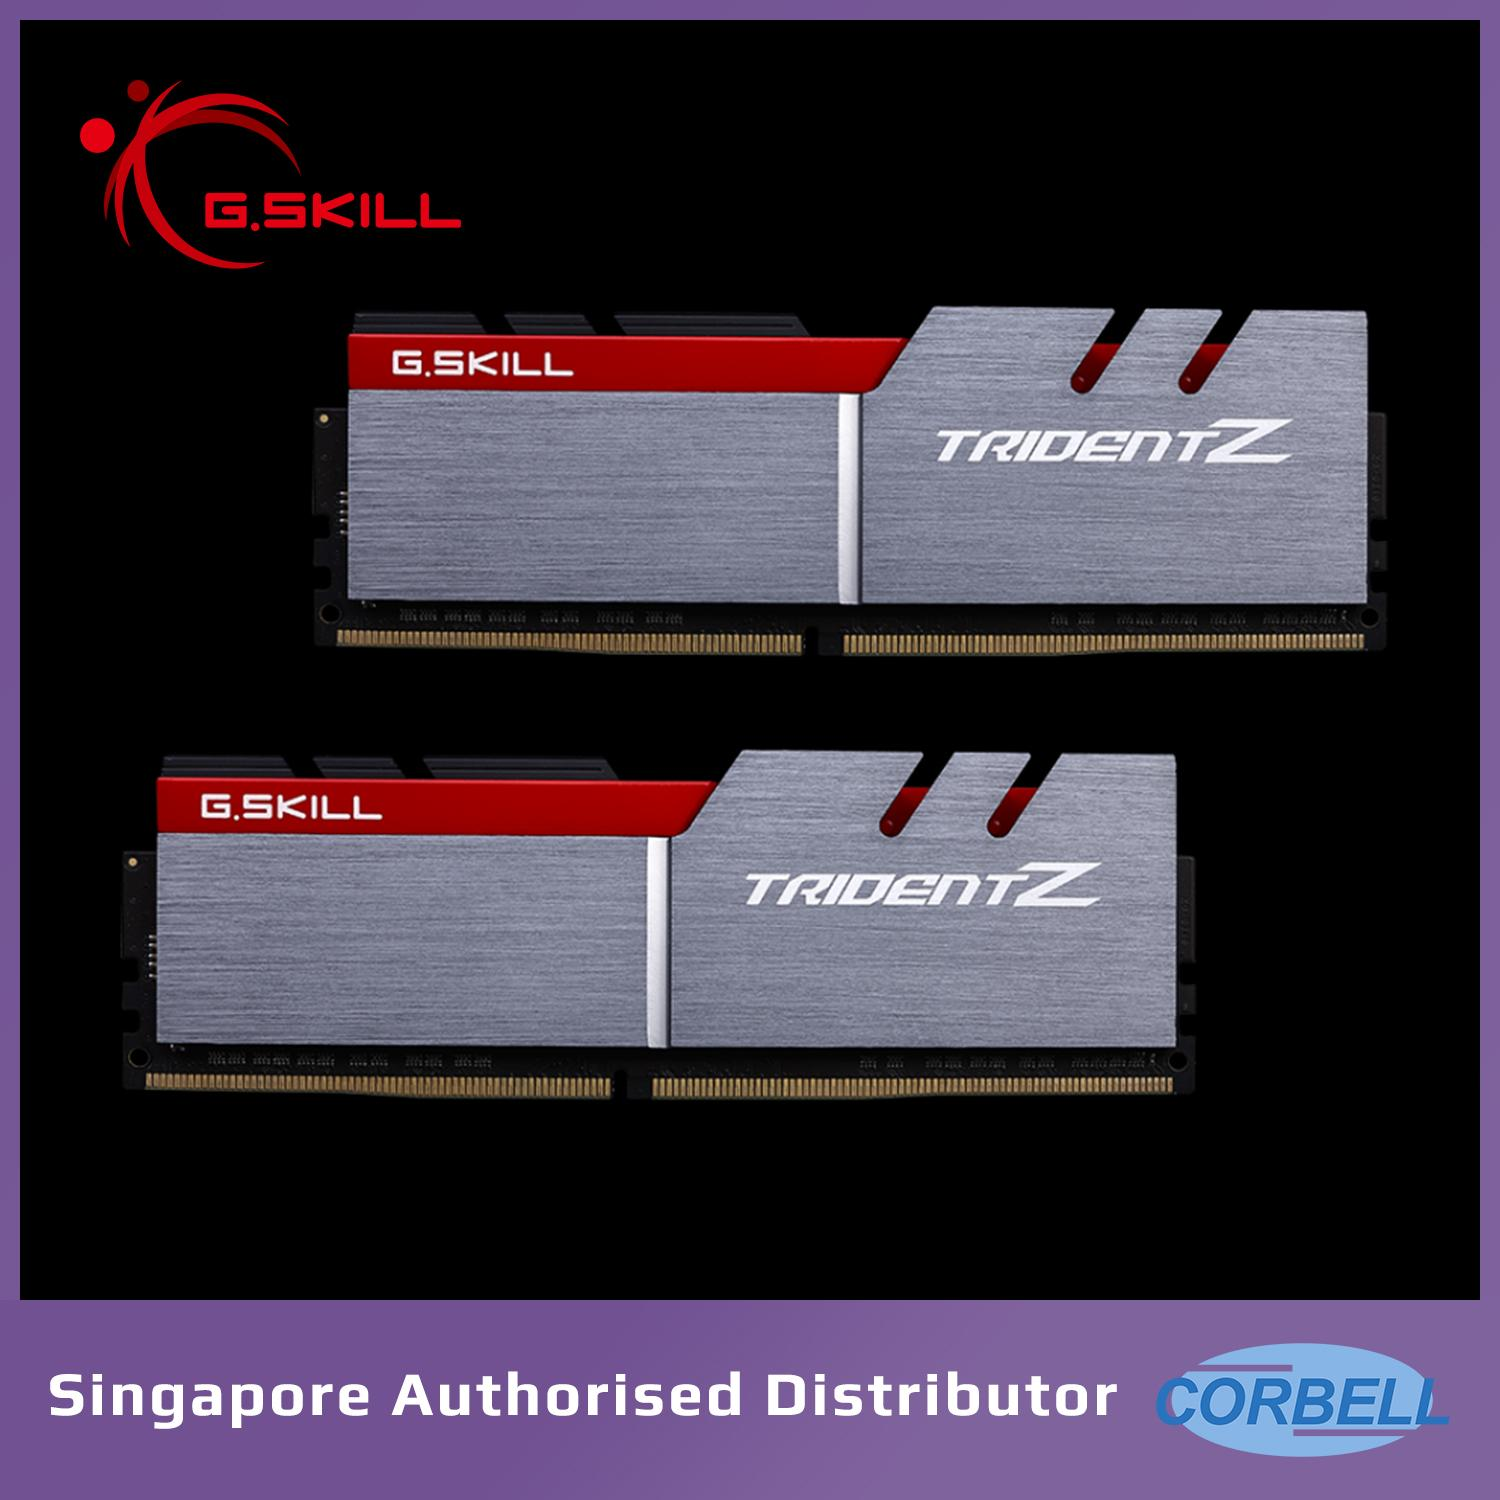 G.skill Trident Z 3200mhz 2x8gb Ddr4 Dual Channel Kit By Corbell Technology Pte Ltd.